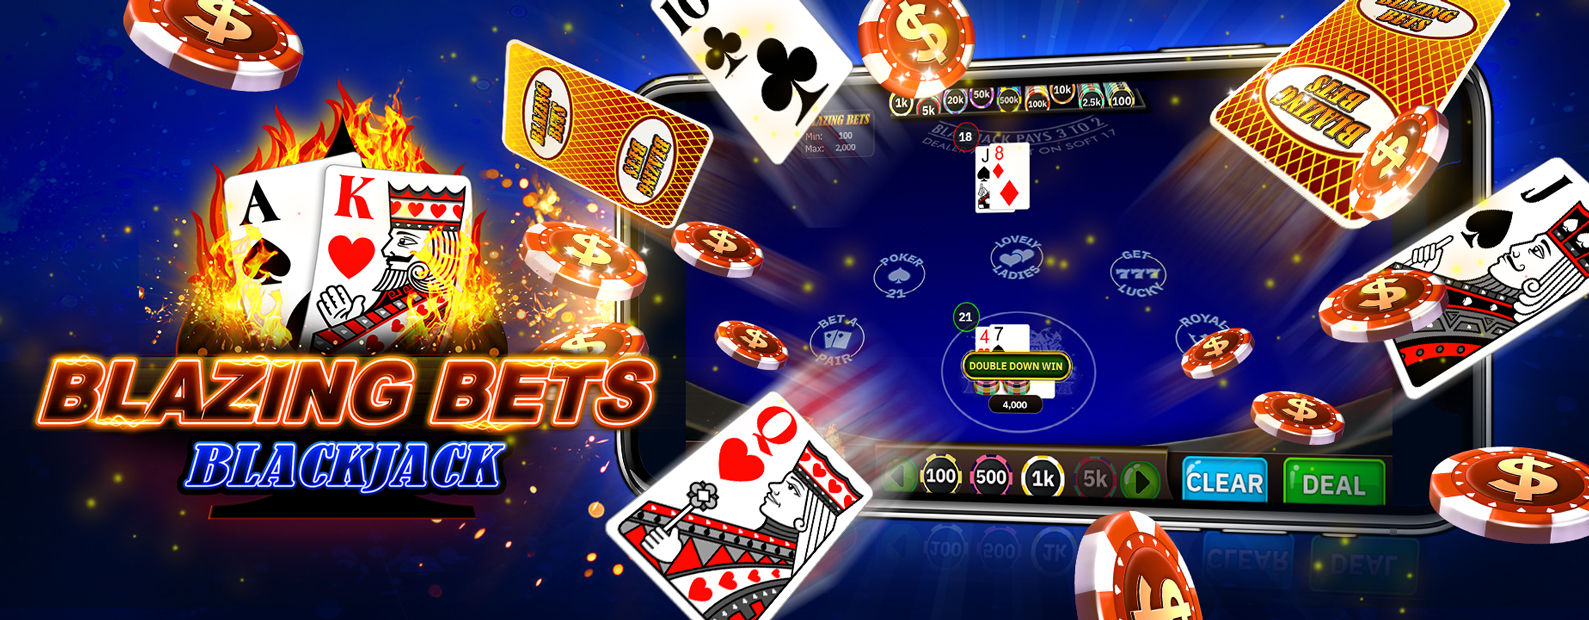 Blazing Bets Blackjack